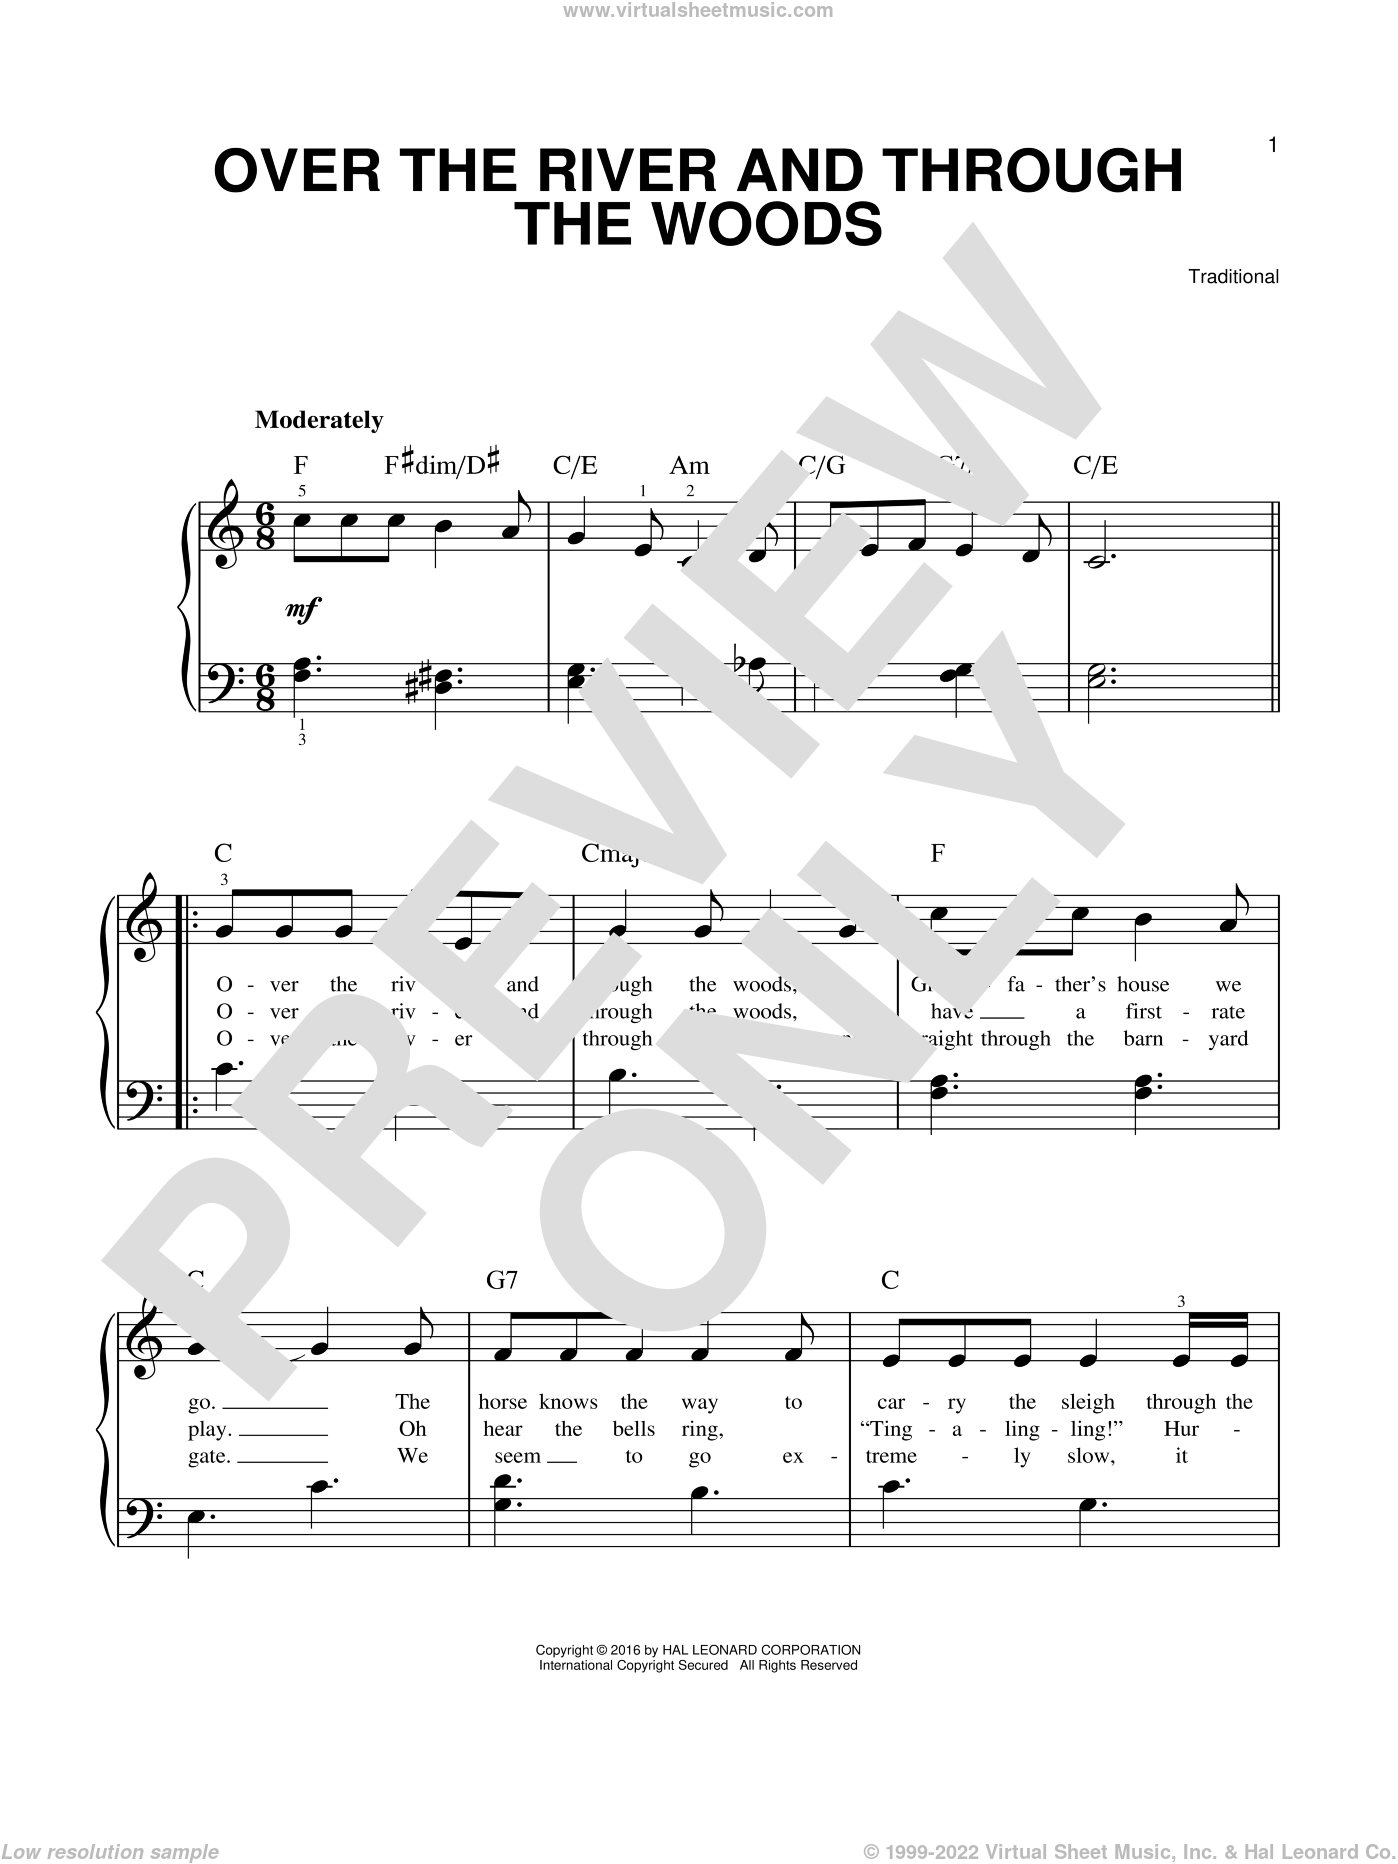 Over The River And Through The Woods sheet music for piano solo, easy. Score Image Preview.